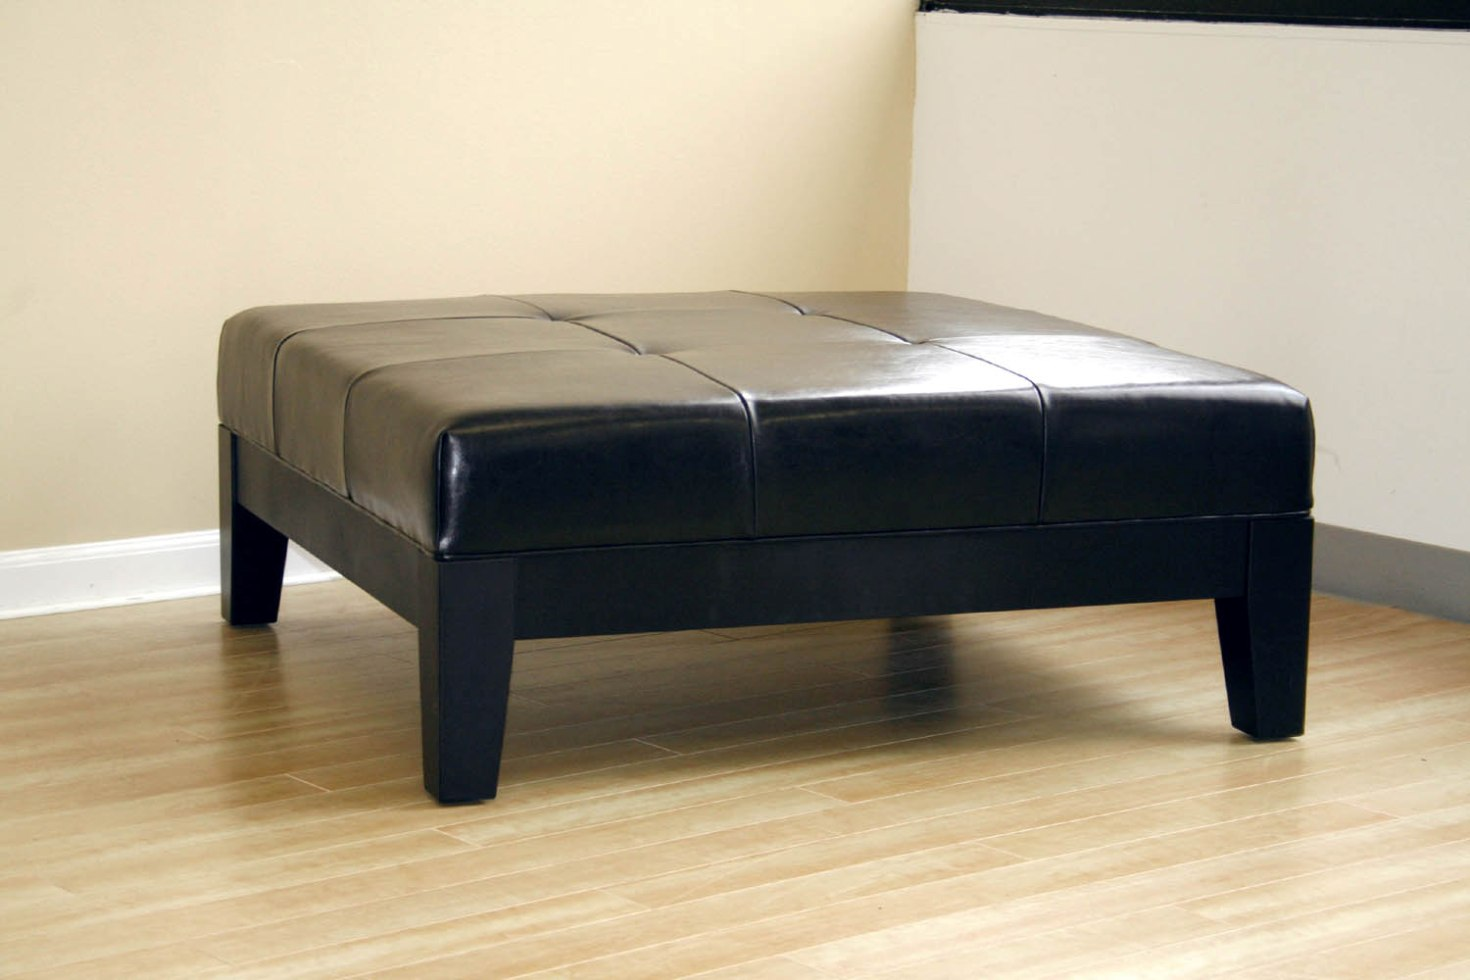 Extra Large Ottoman for Large Space Living Room Design: Extra Long Ottoman | Extra Large Ottoman | Cloth Ottoman Coffee Table